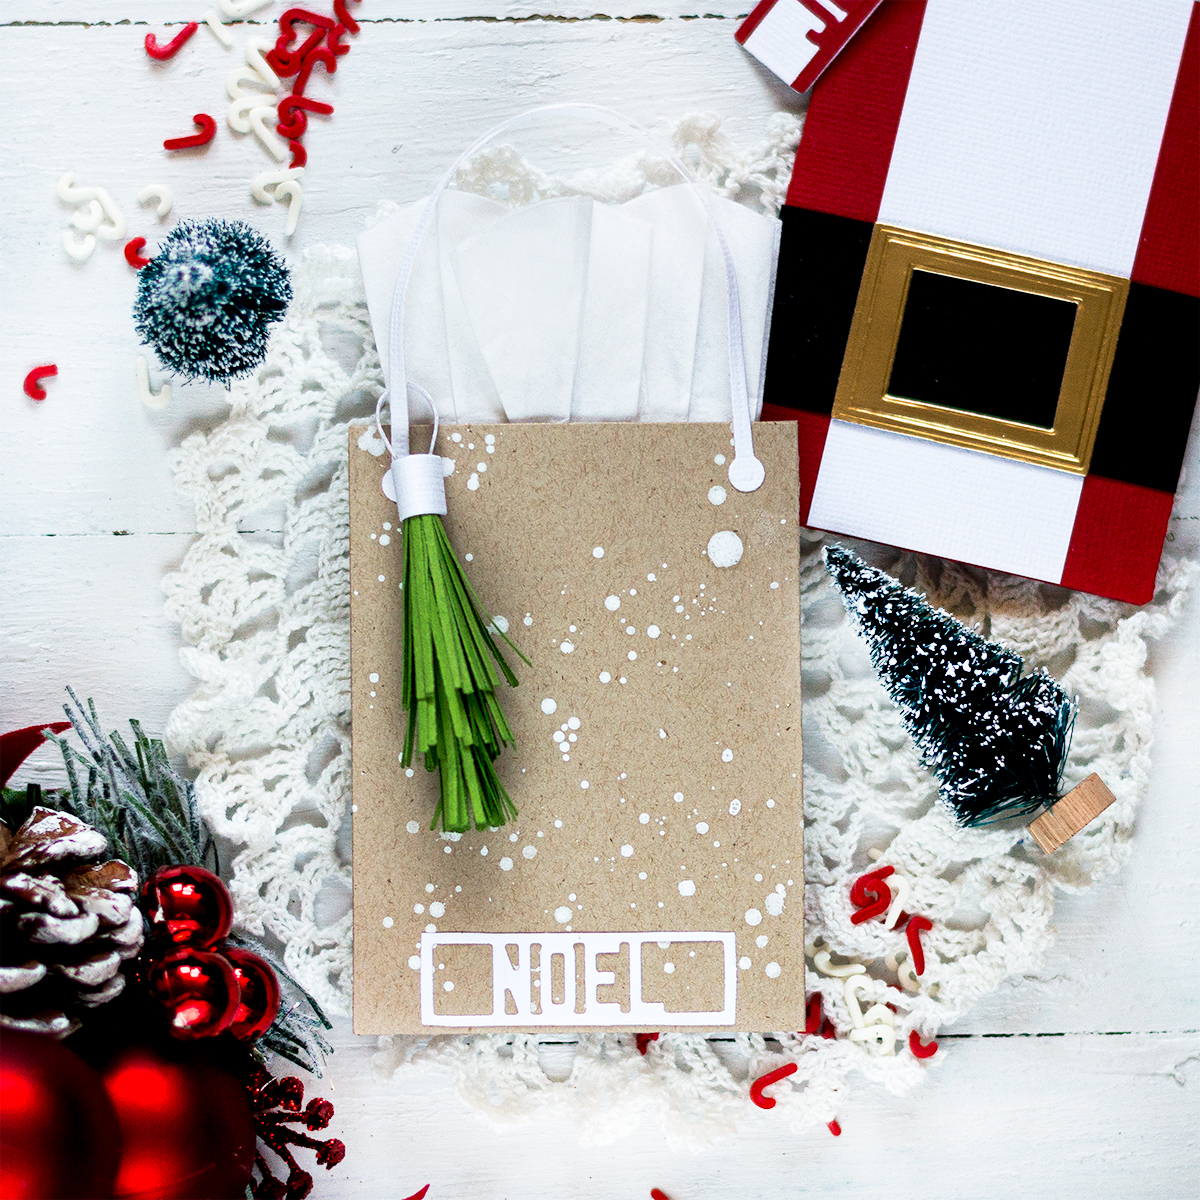 Kraft Bag Christmas Gift Card Holder. Card by Svitlana Shayevich